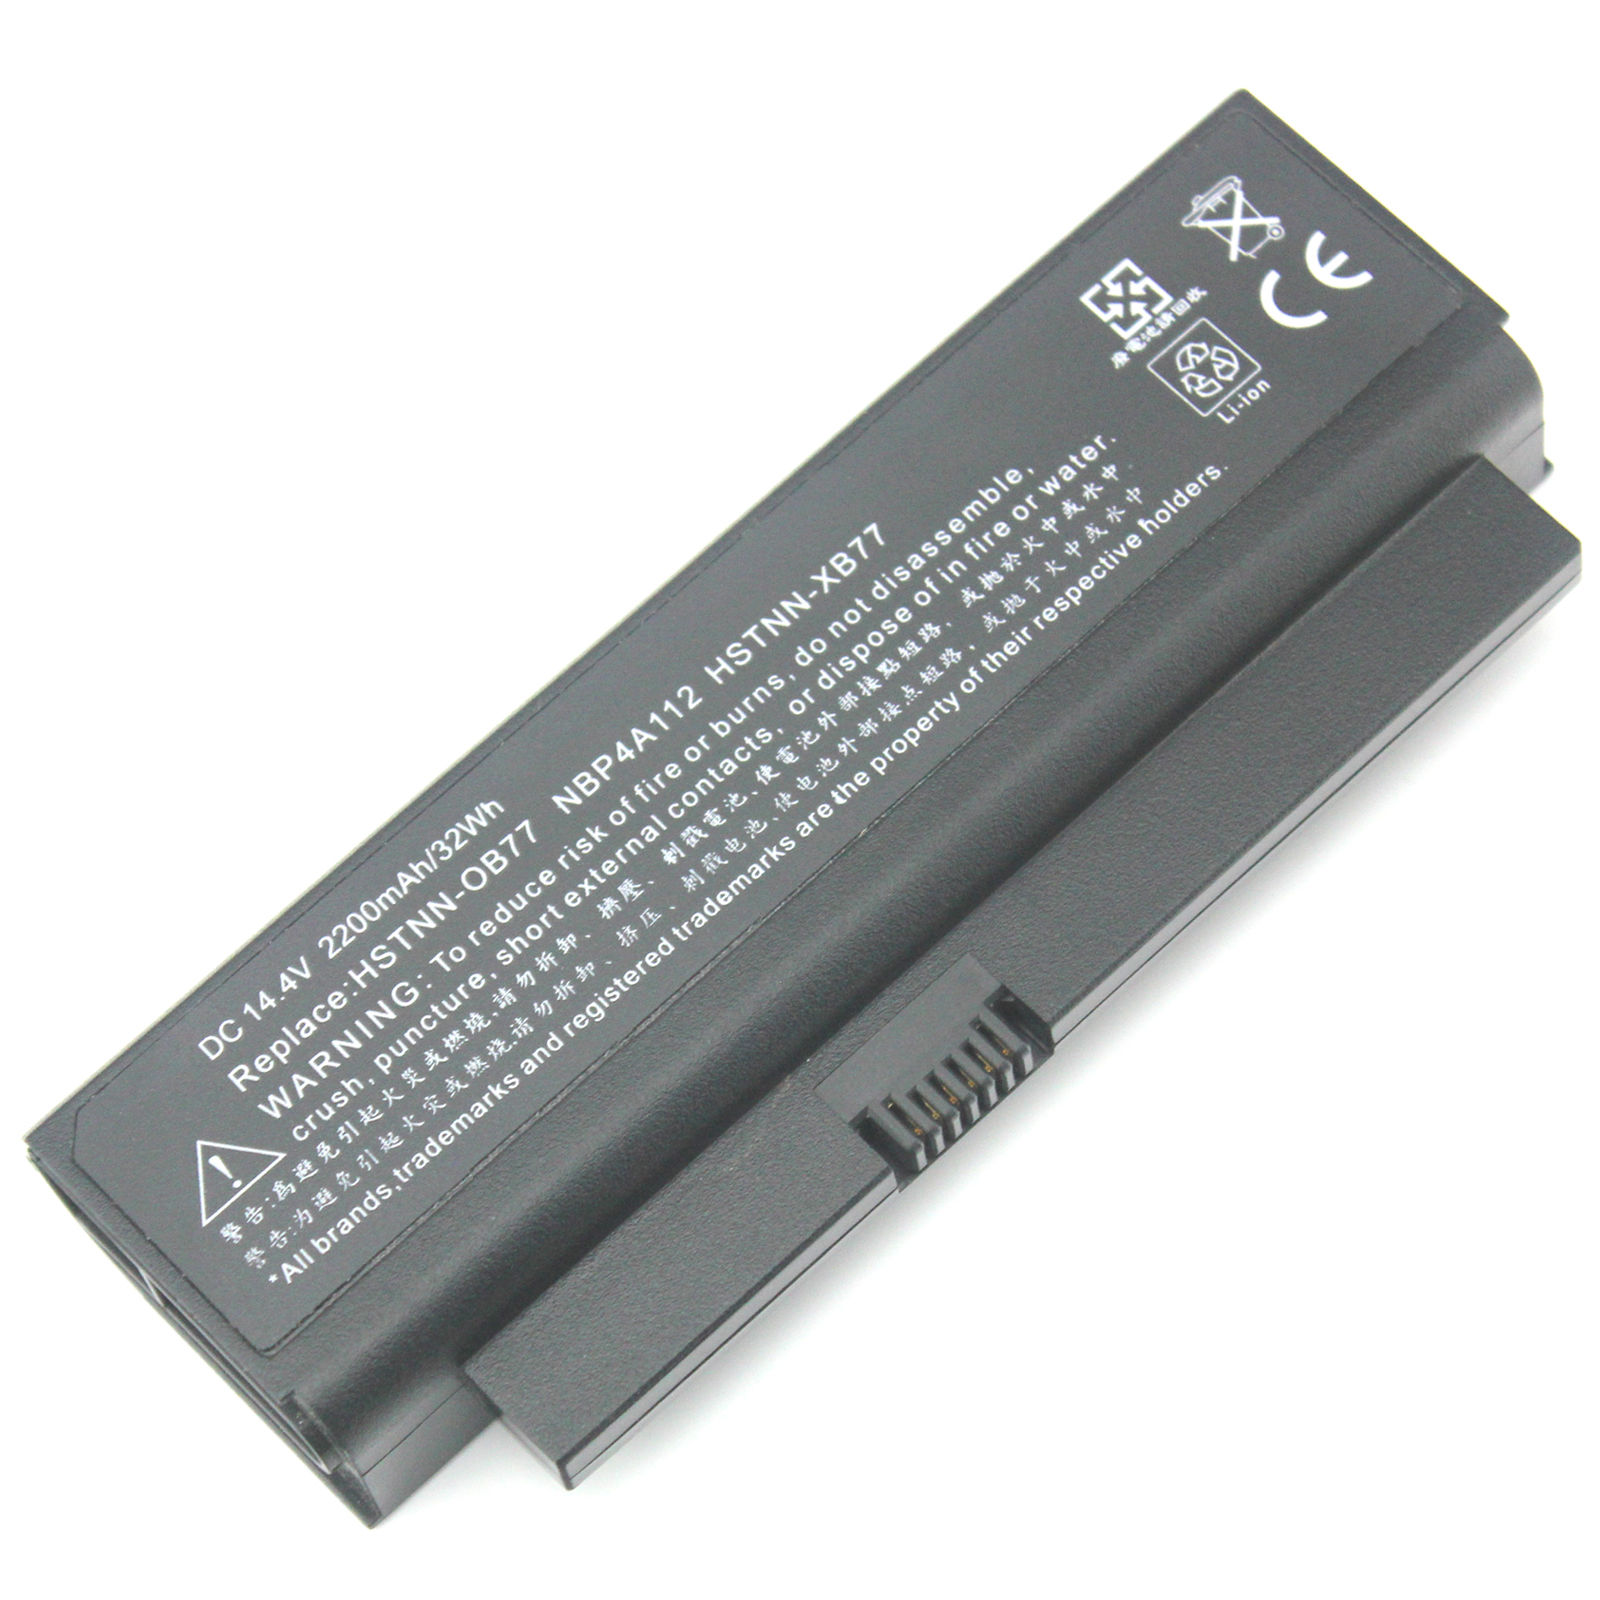 Pin HP - Battery HP CQ20 2230s